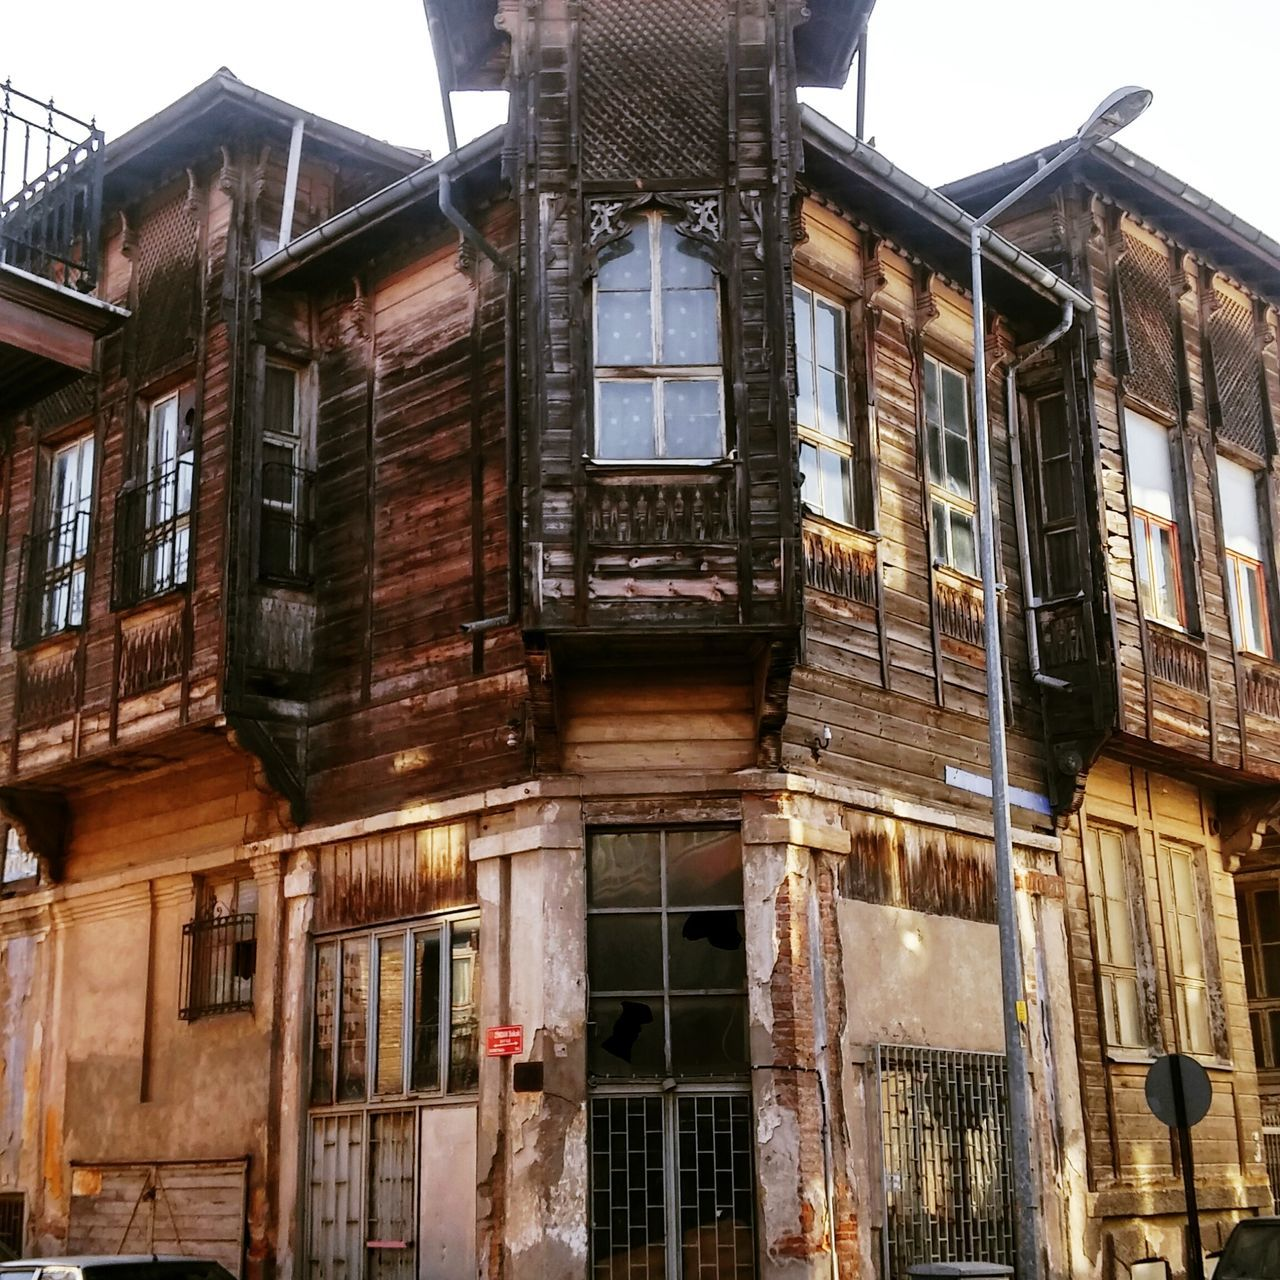 Architecture House Mansion Old Buildings Abondoned Edirne Turkey Built Structure Window Building Exterior No People Sky Day Outdoors